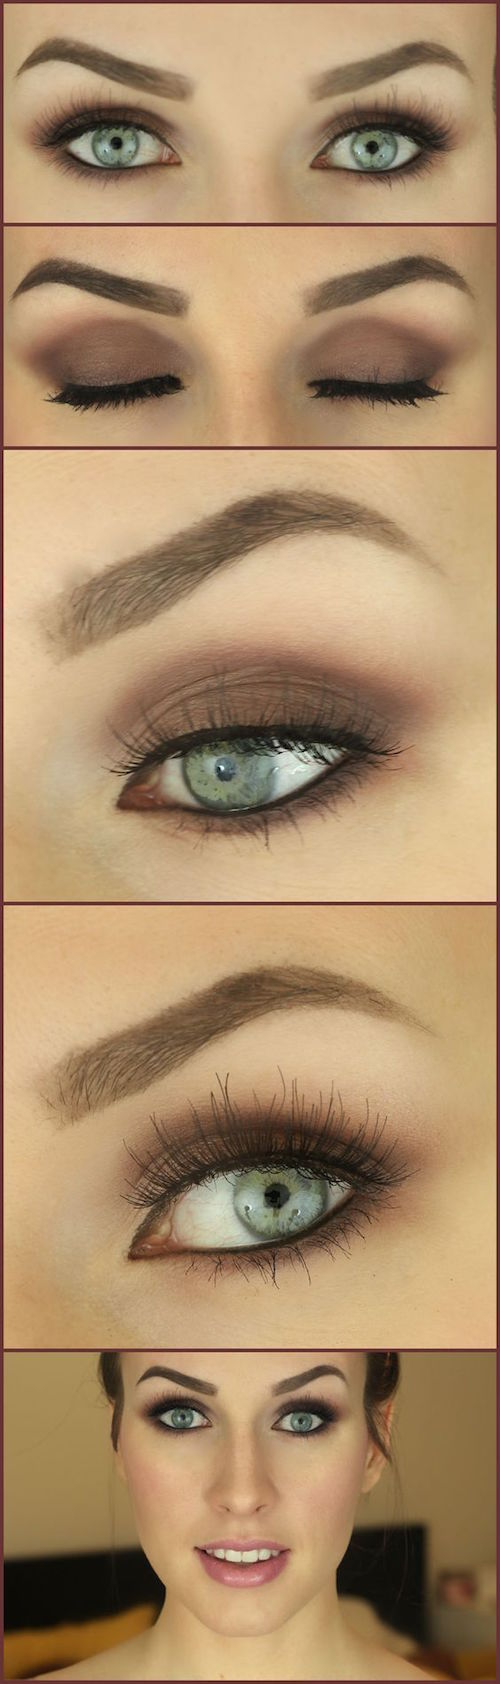 Simple smoky eye tutorial.